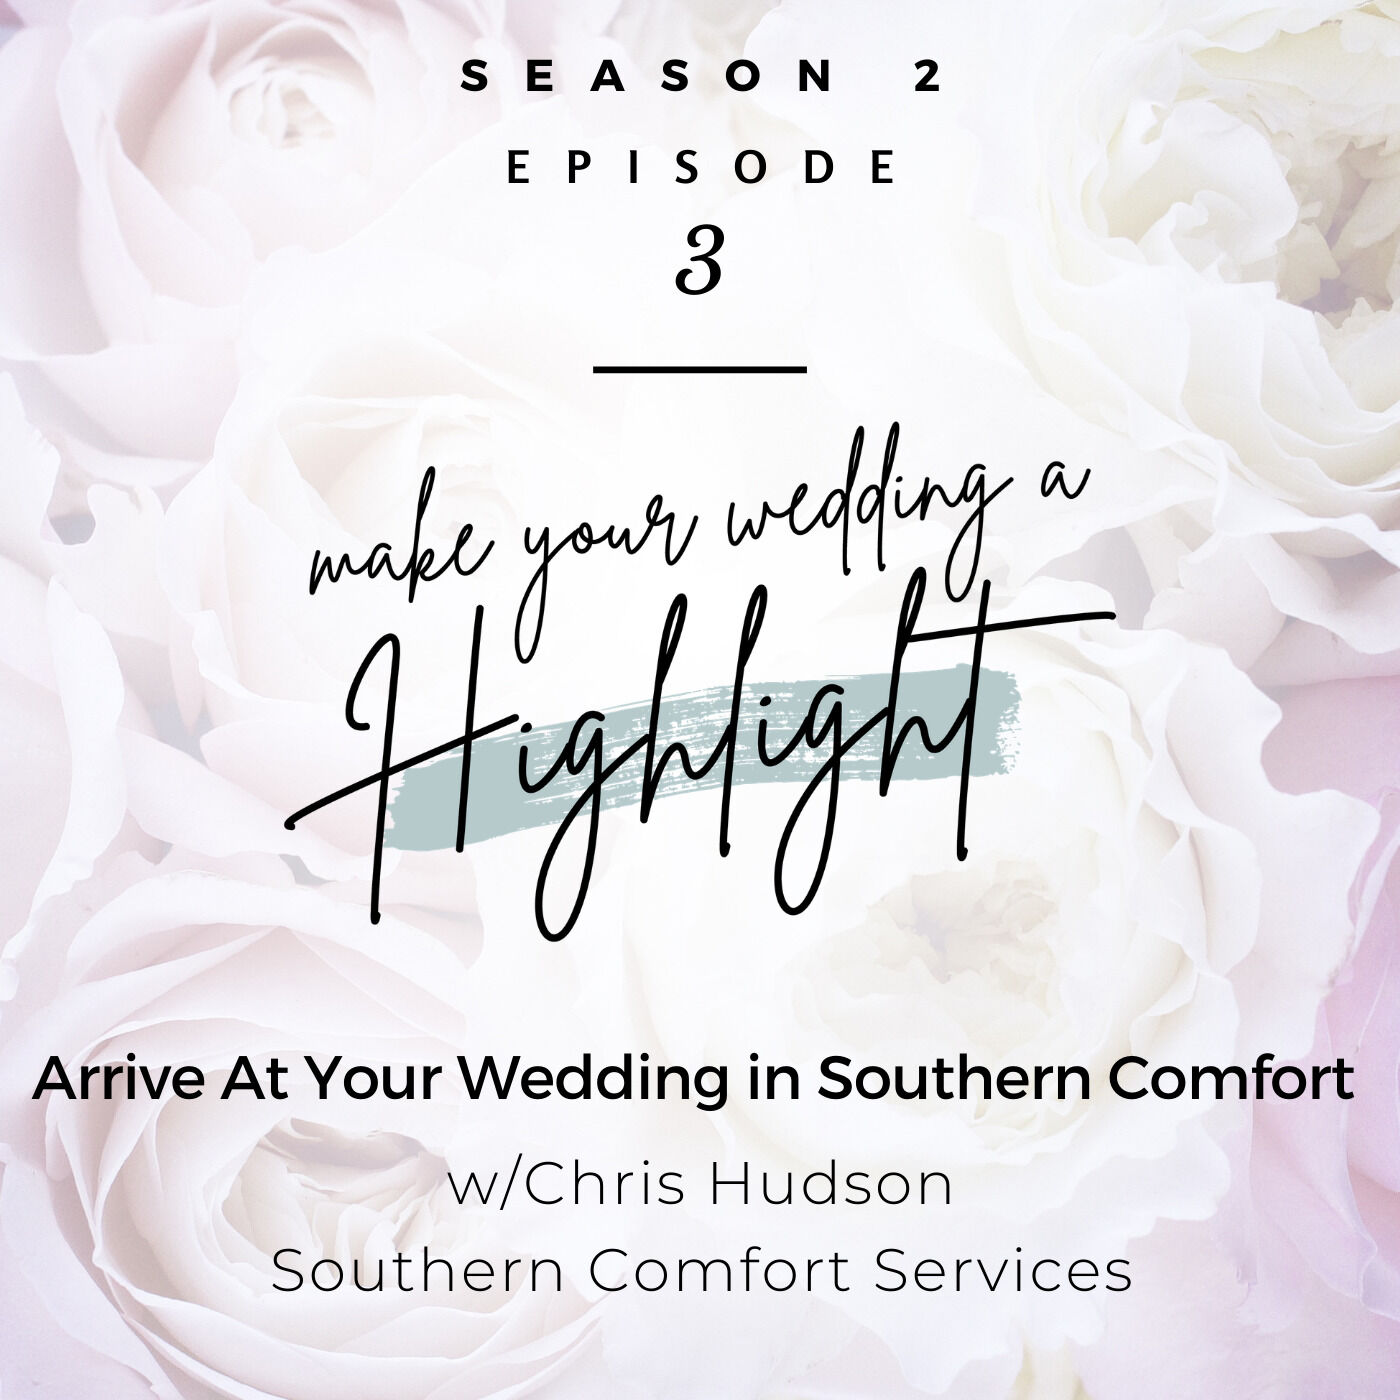 Arrive At Your Wedding in Southern Comfort